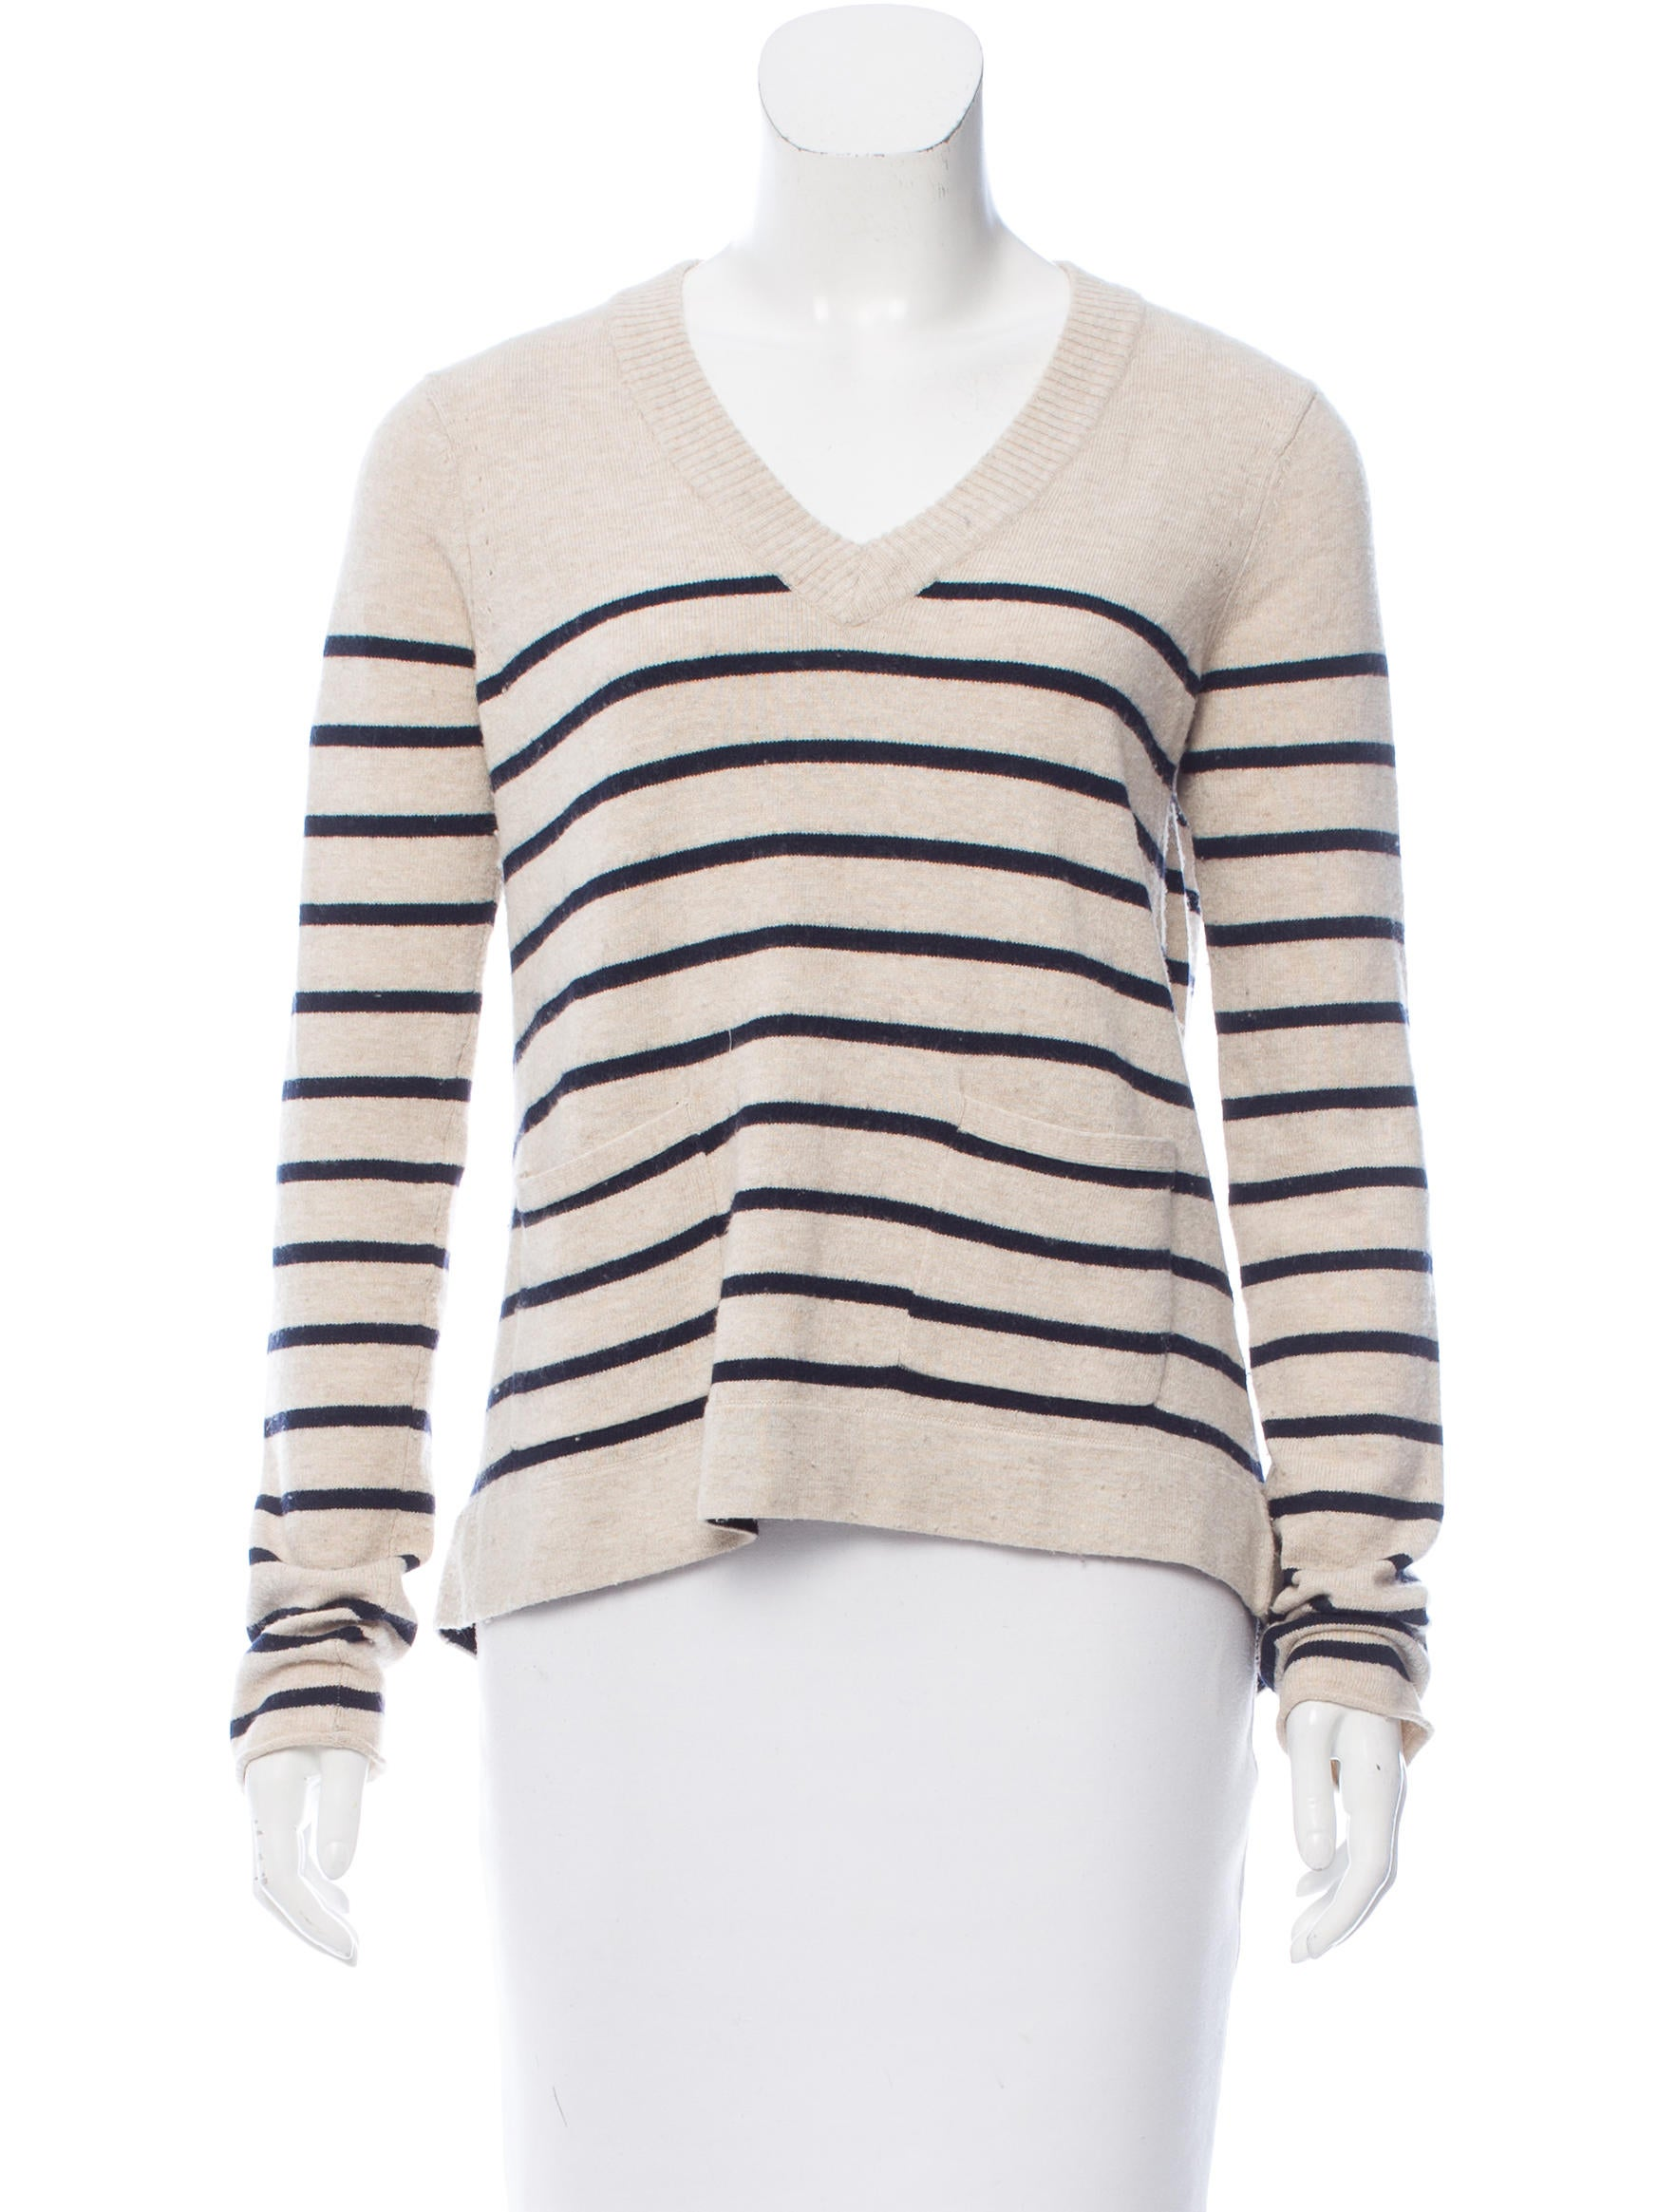 Knitting Pattern Striped Sweater : Rag & Bone Stripe Pattern Knit Sweater - Clothing ...